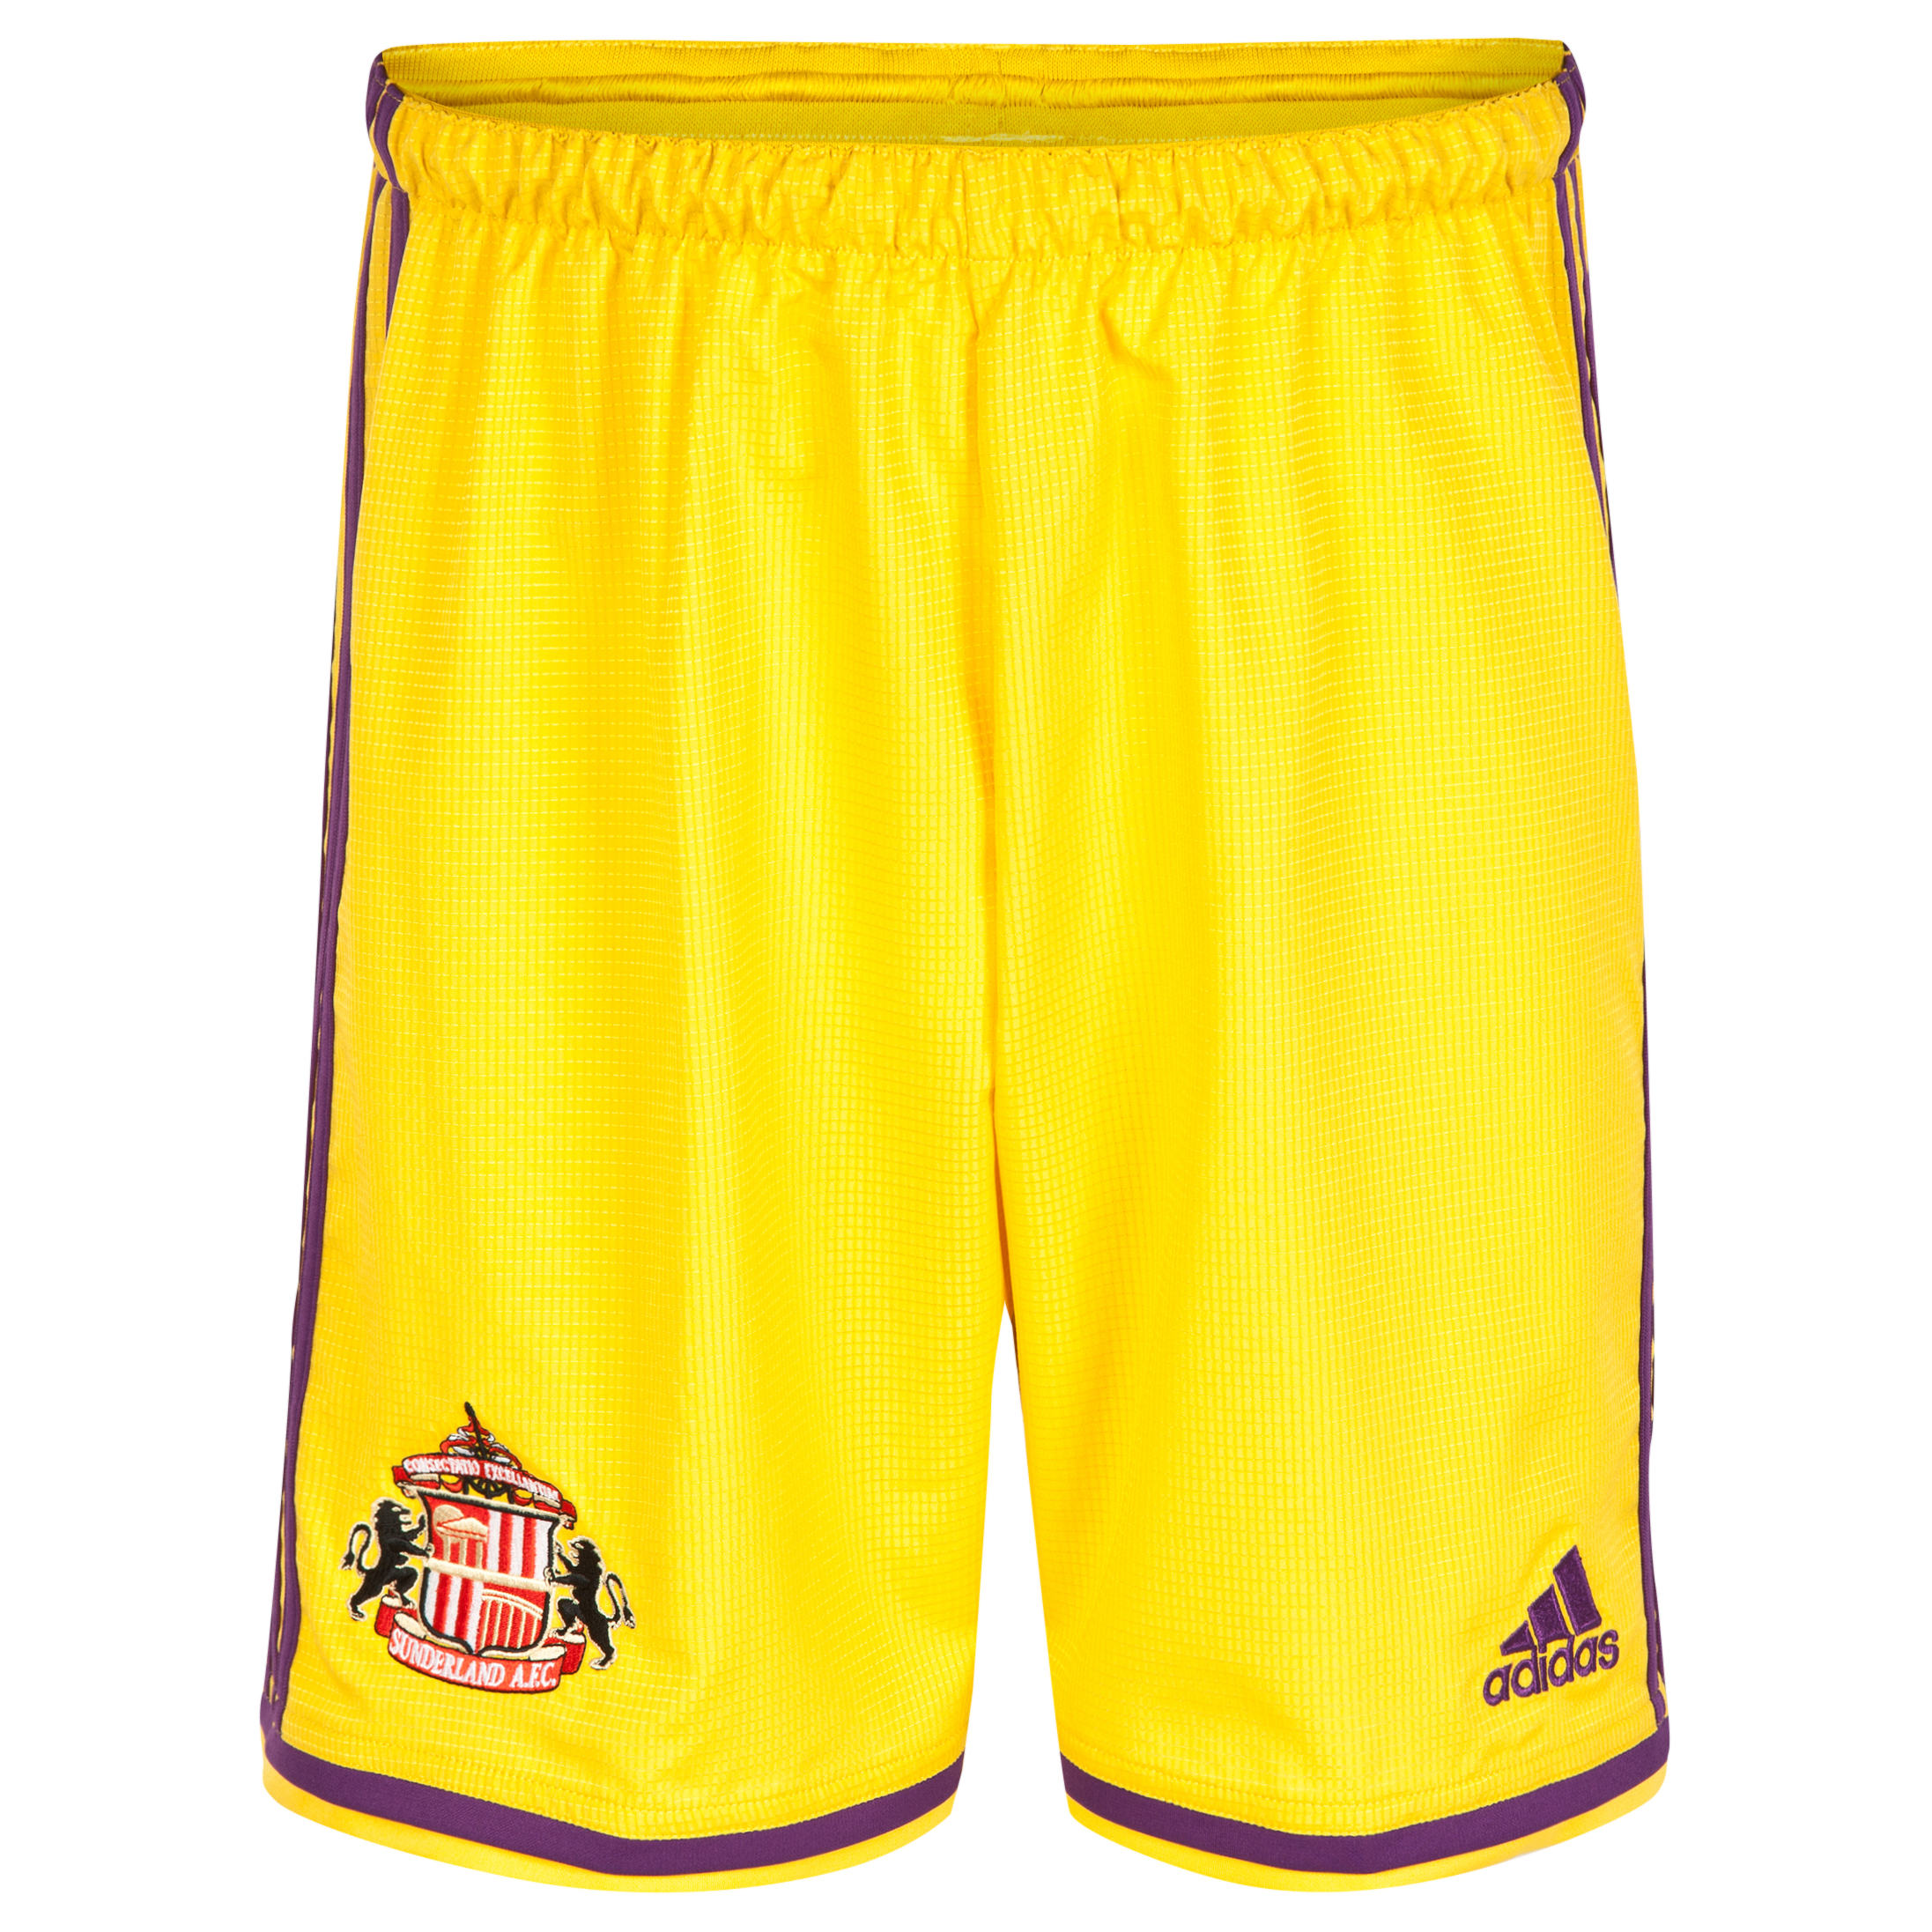 Sunderland Home GK Short 2014/15 Junior